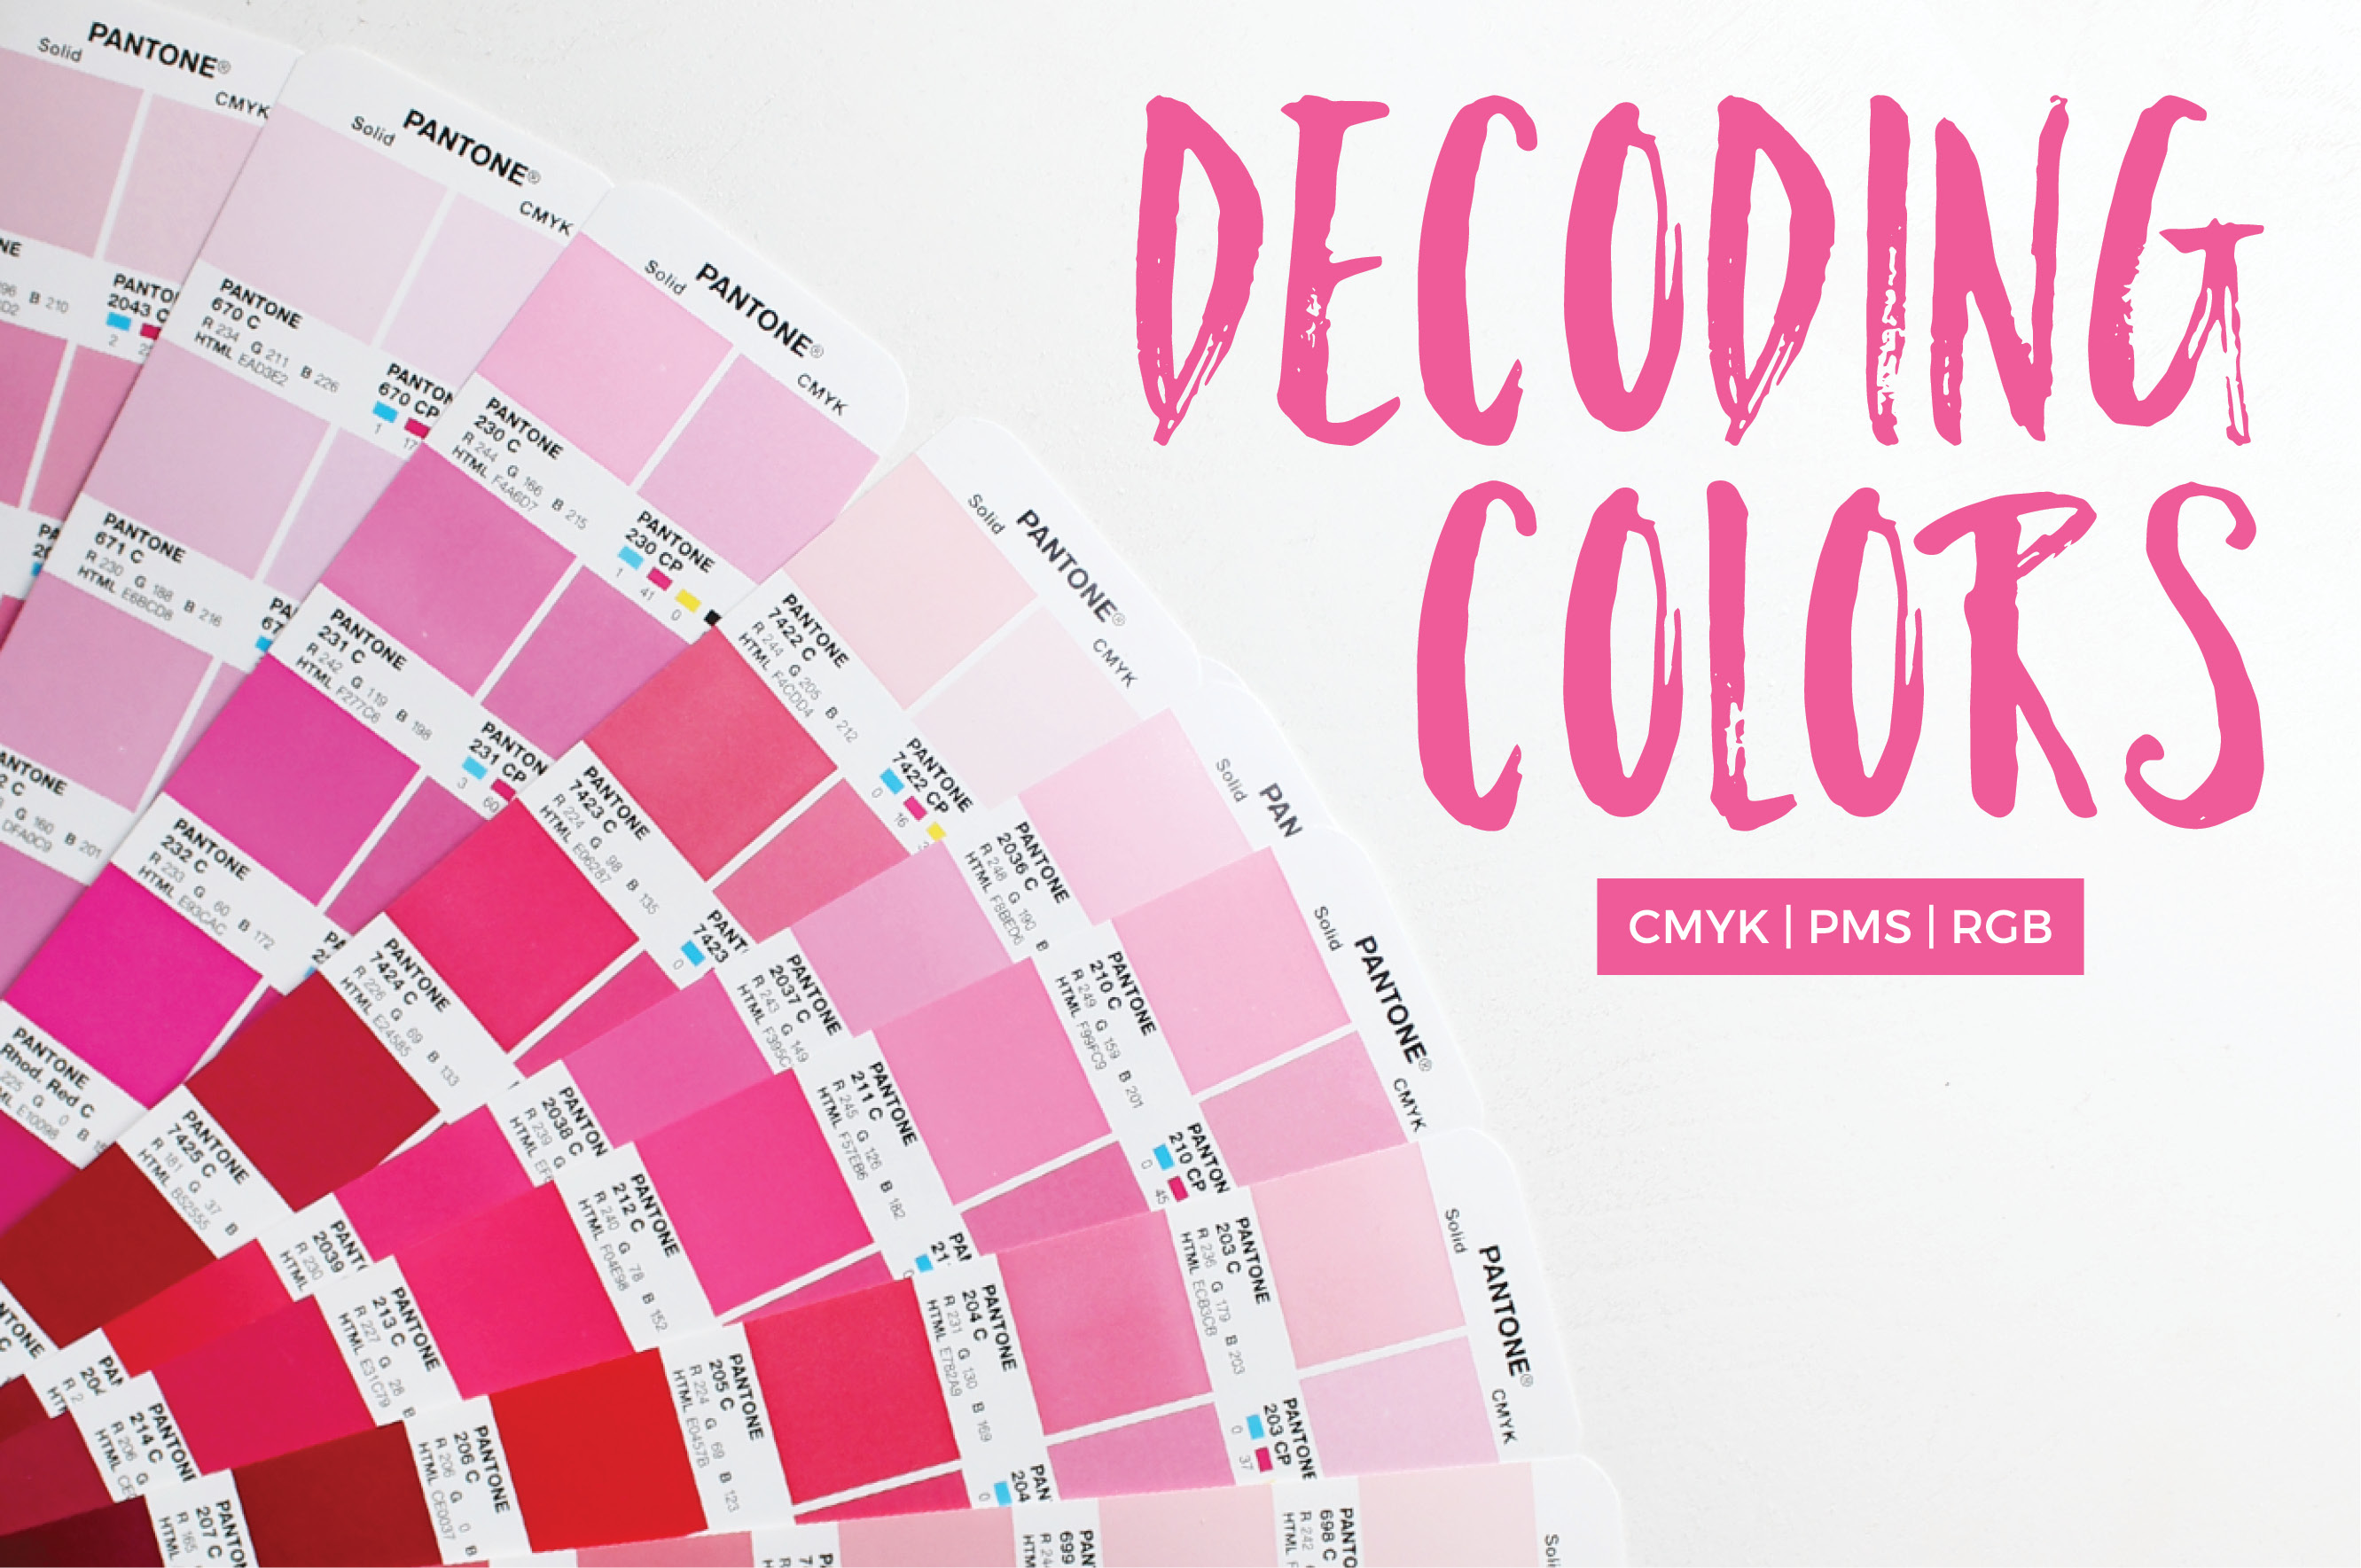 CMYK, RGB, PMS, Say What? Understand Color Terminology